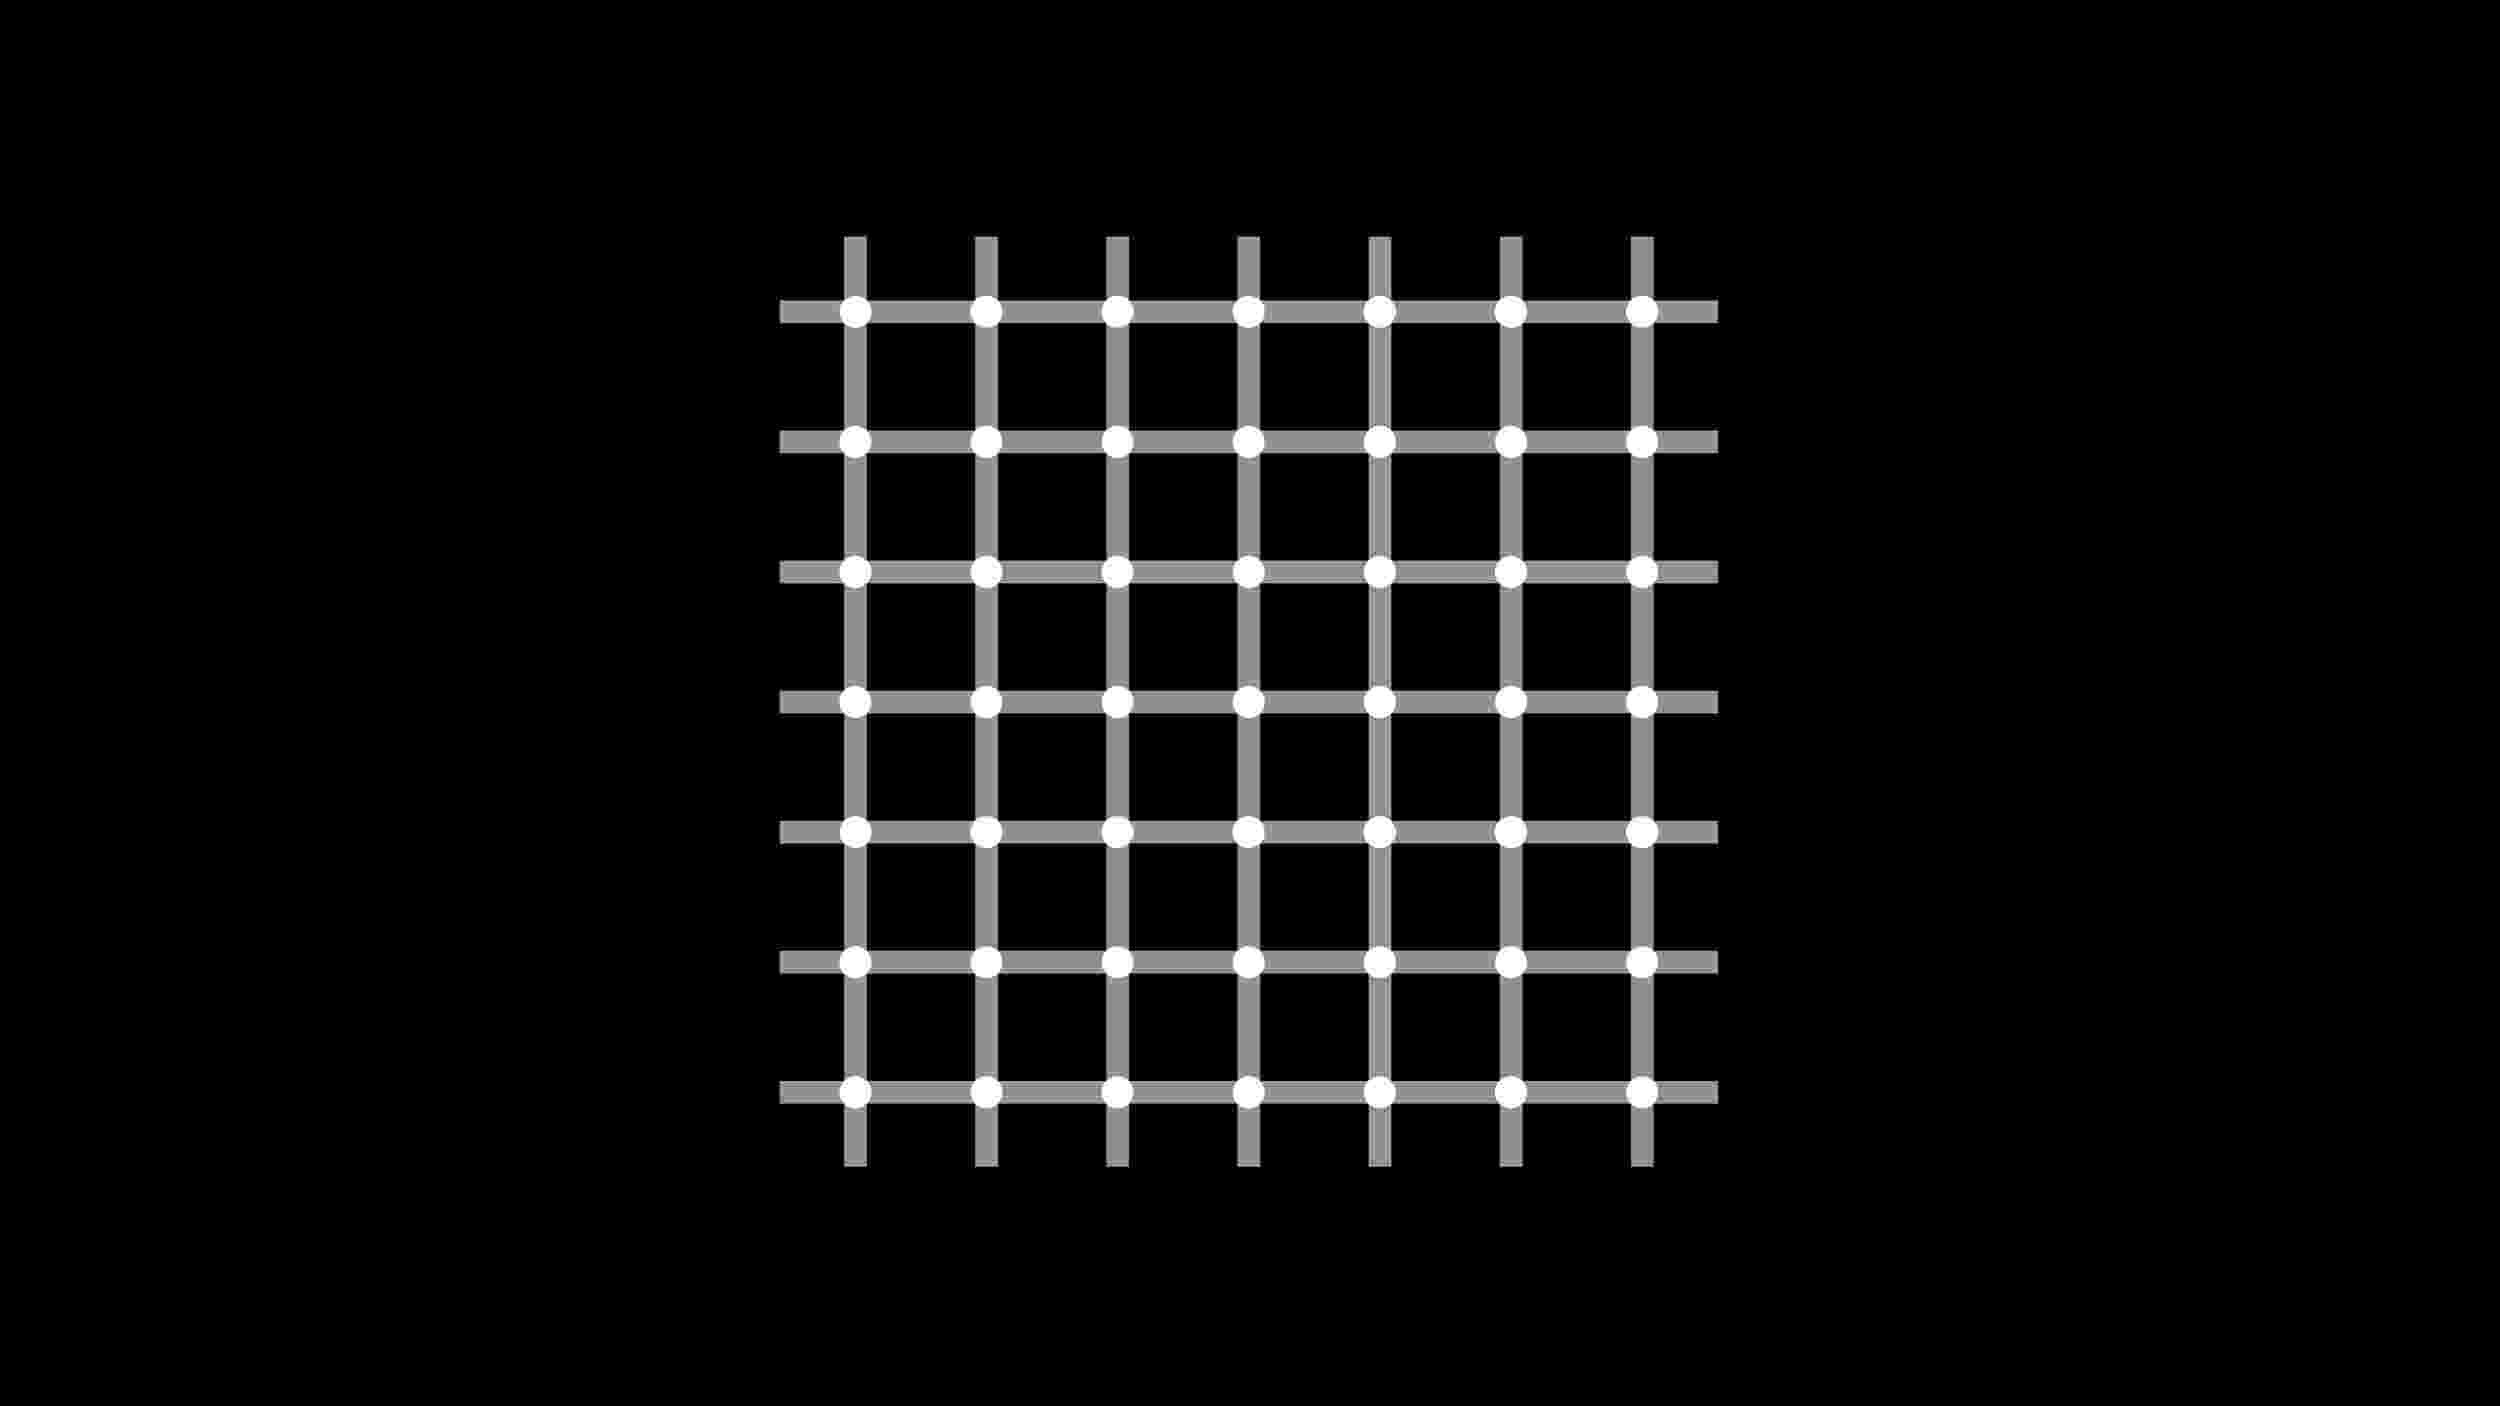 Connect-grid-2